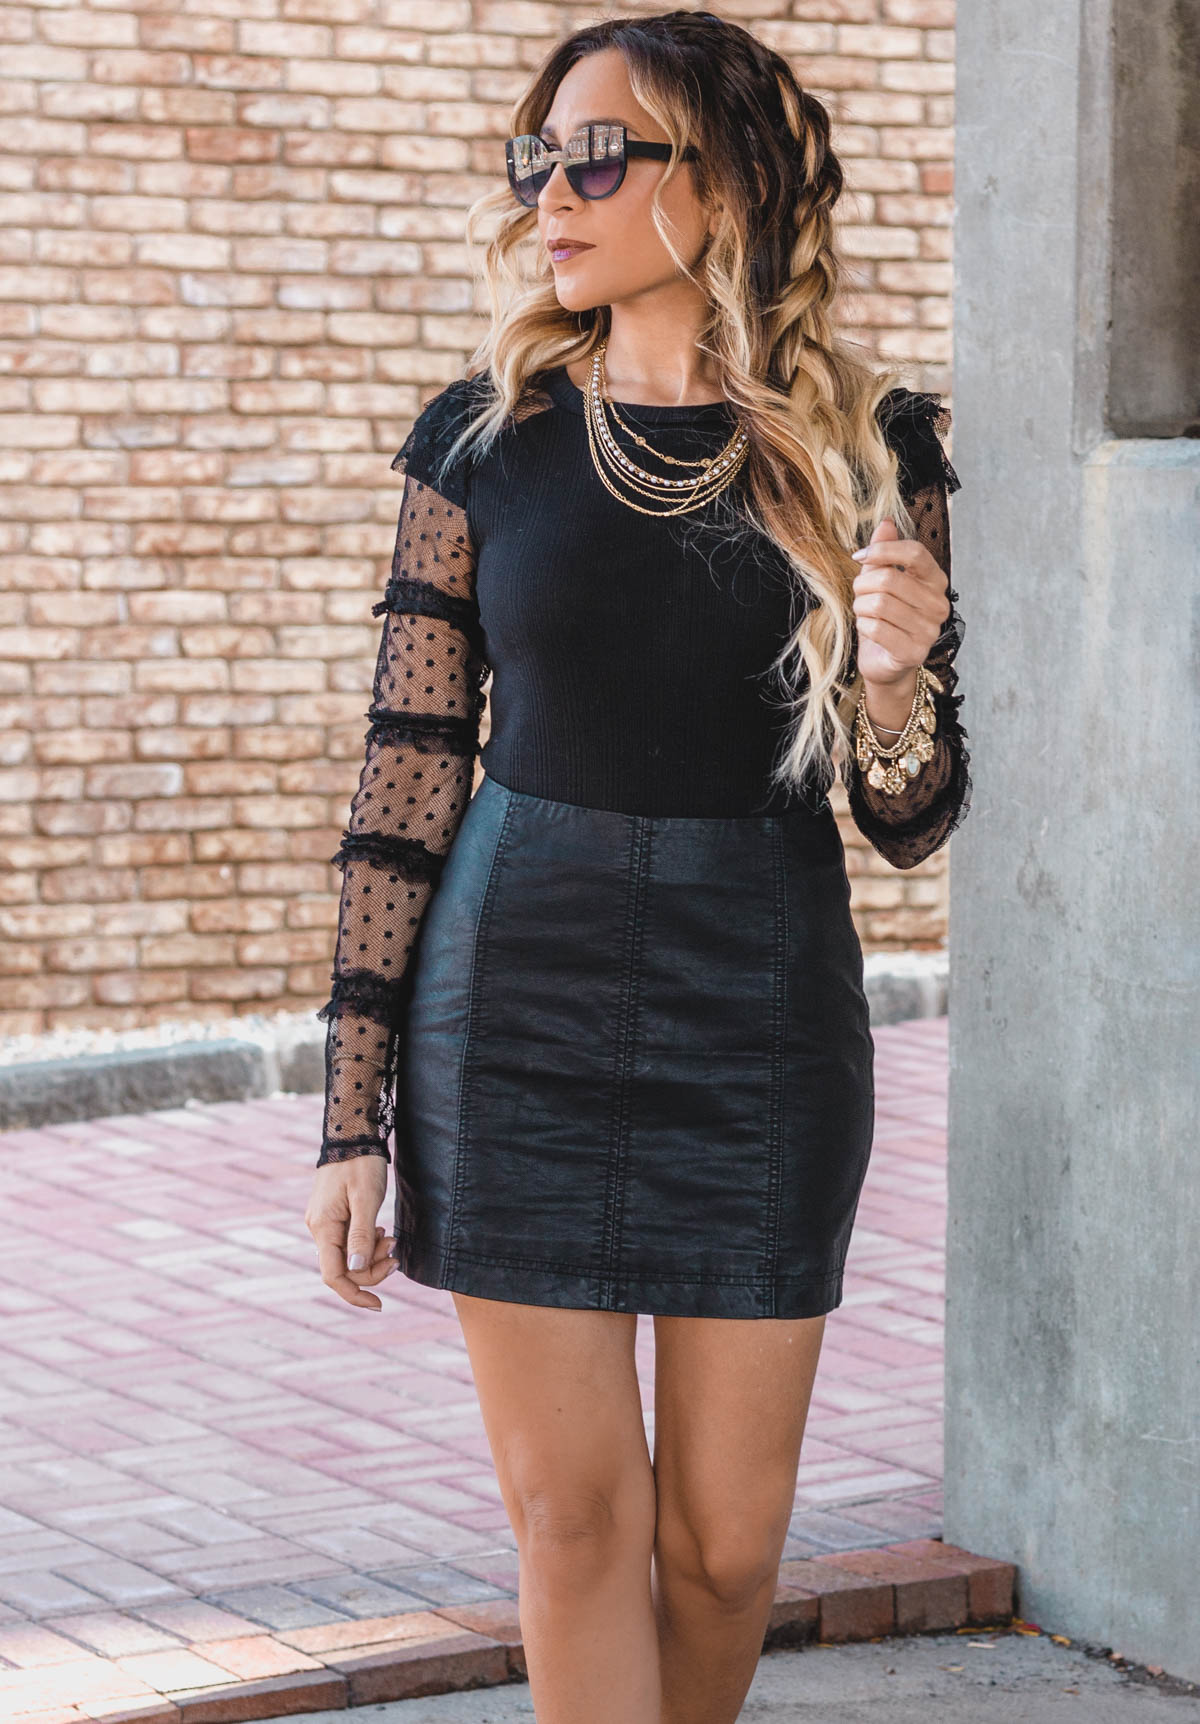 How to Style All Black for Holiday & Everyday